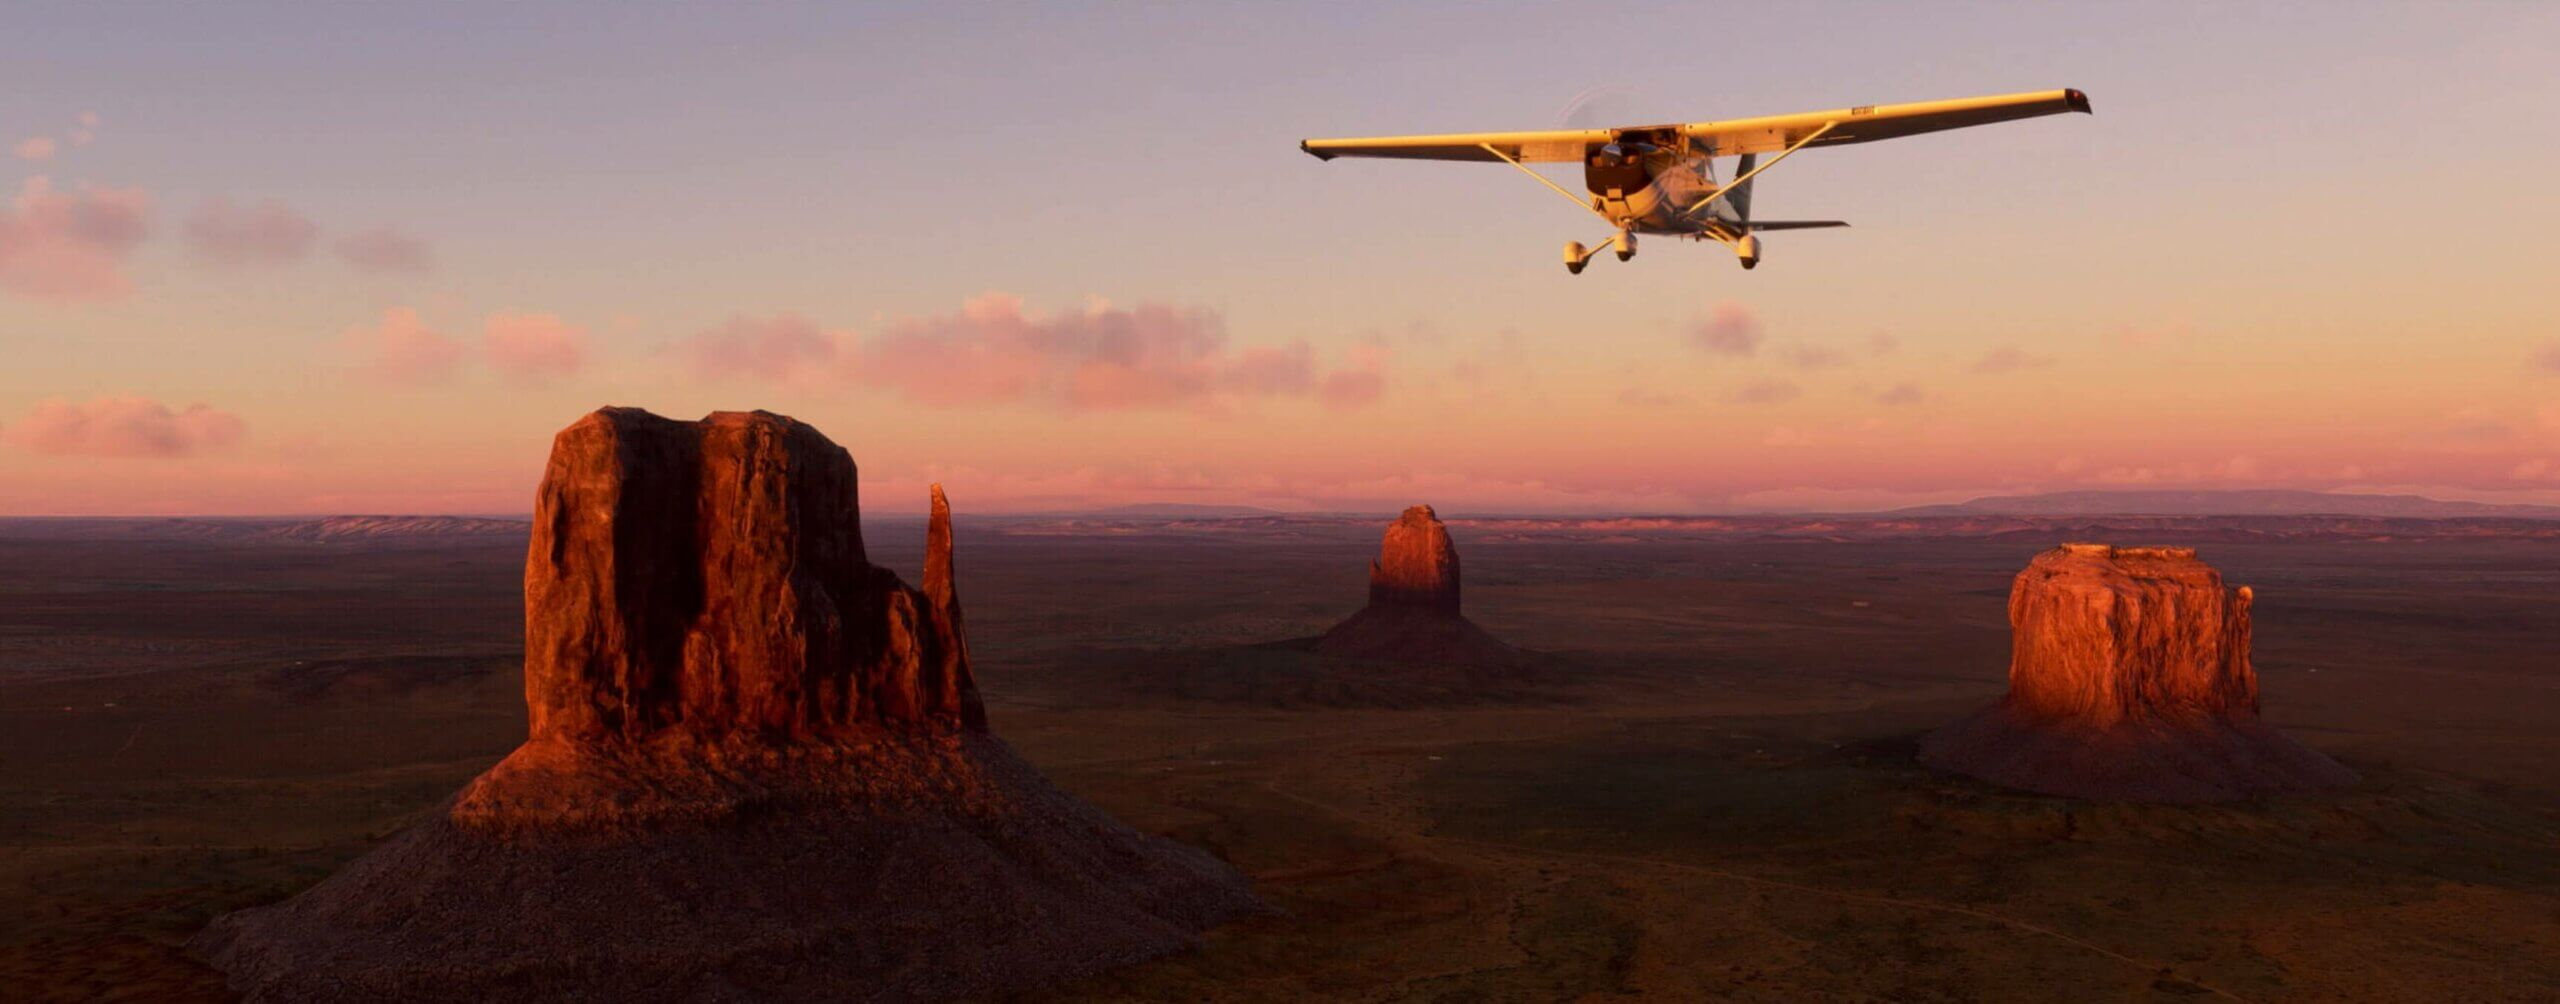 A plane flies over monument valley